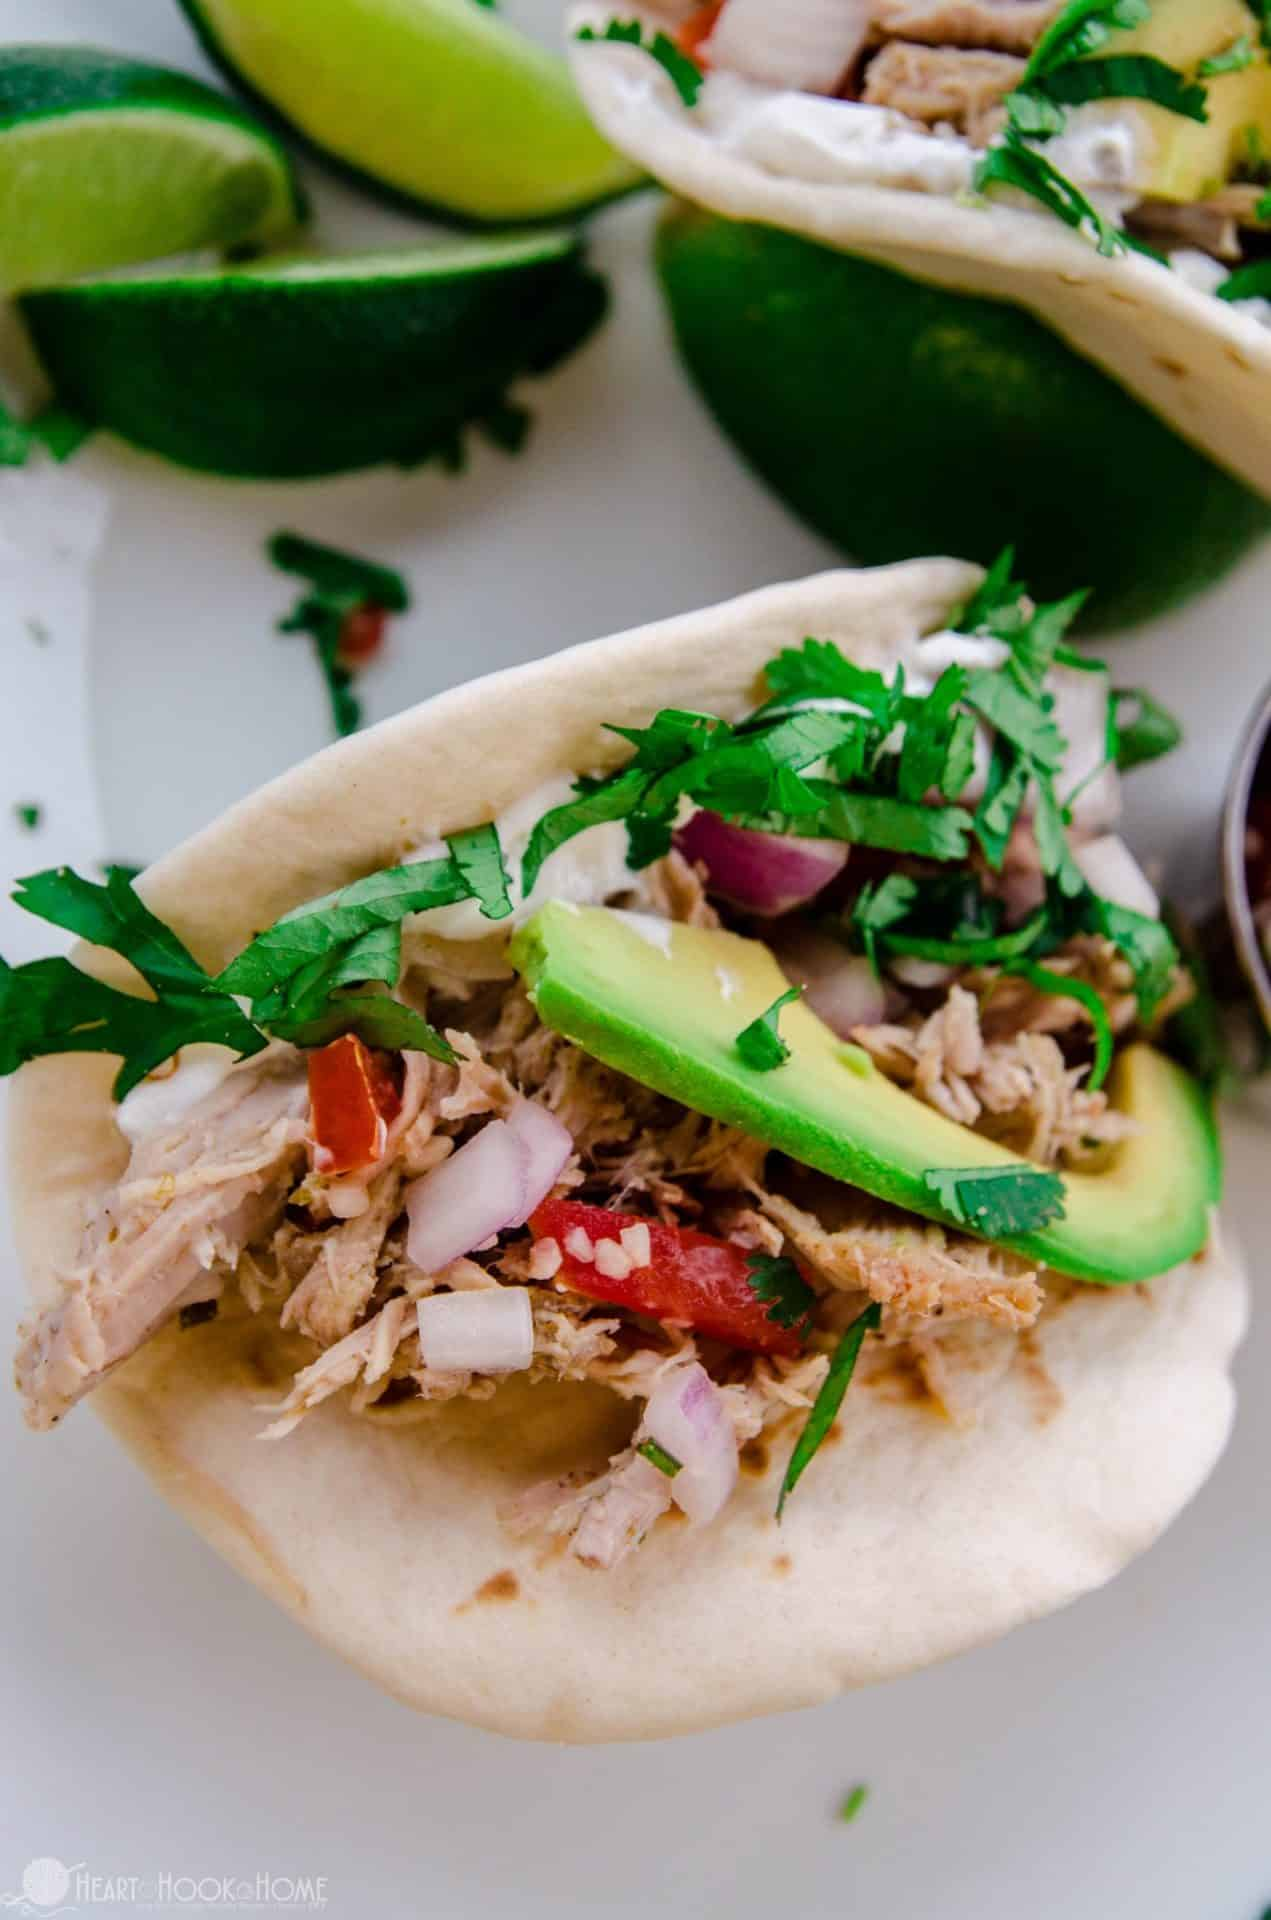 Street tacos with shredded prok, avocado, cilantro and pico de gallo